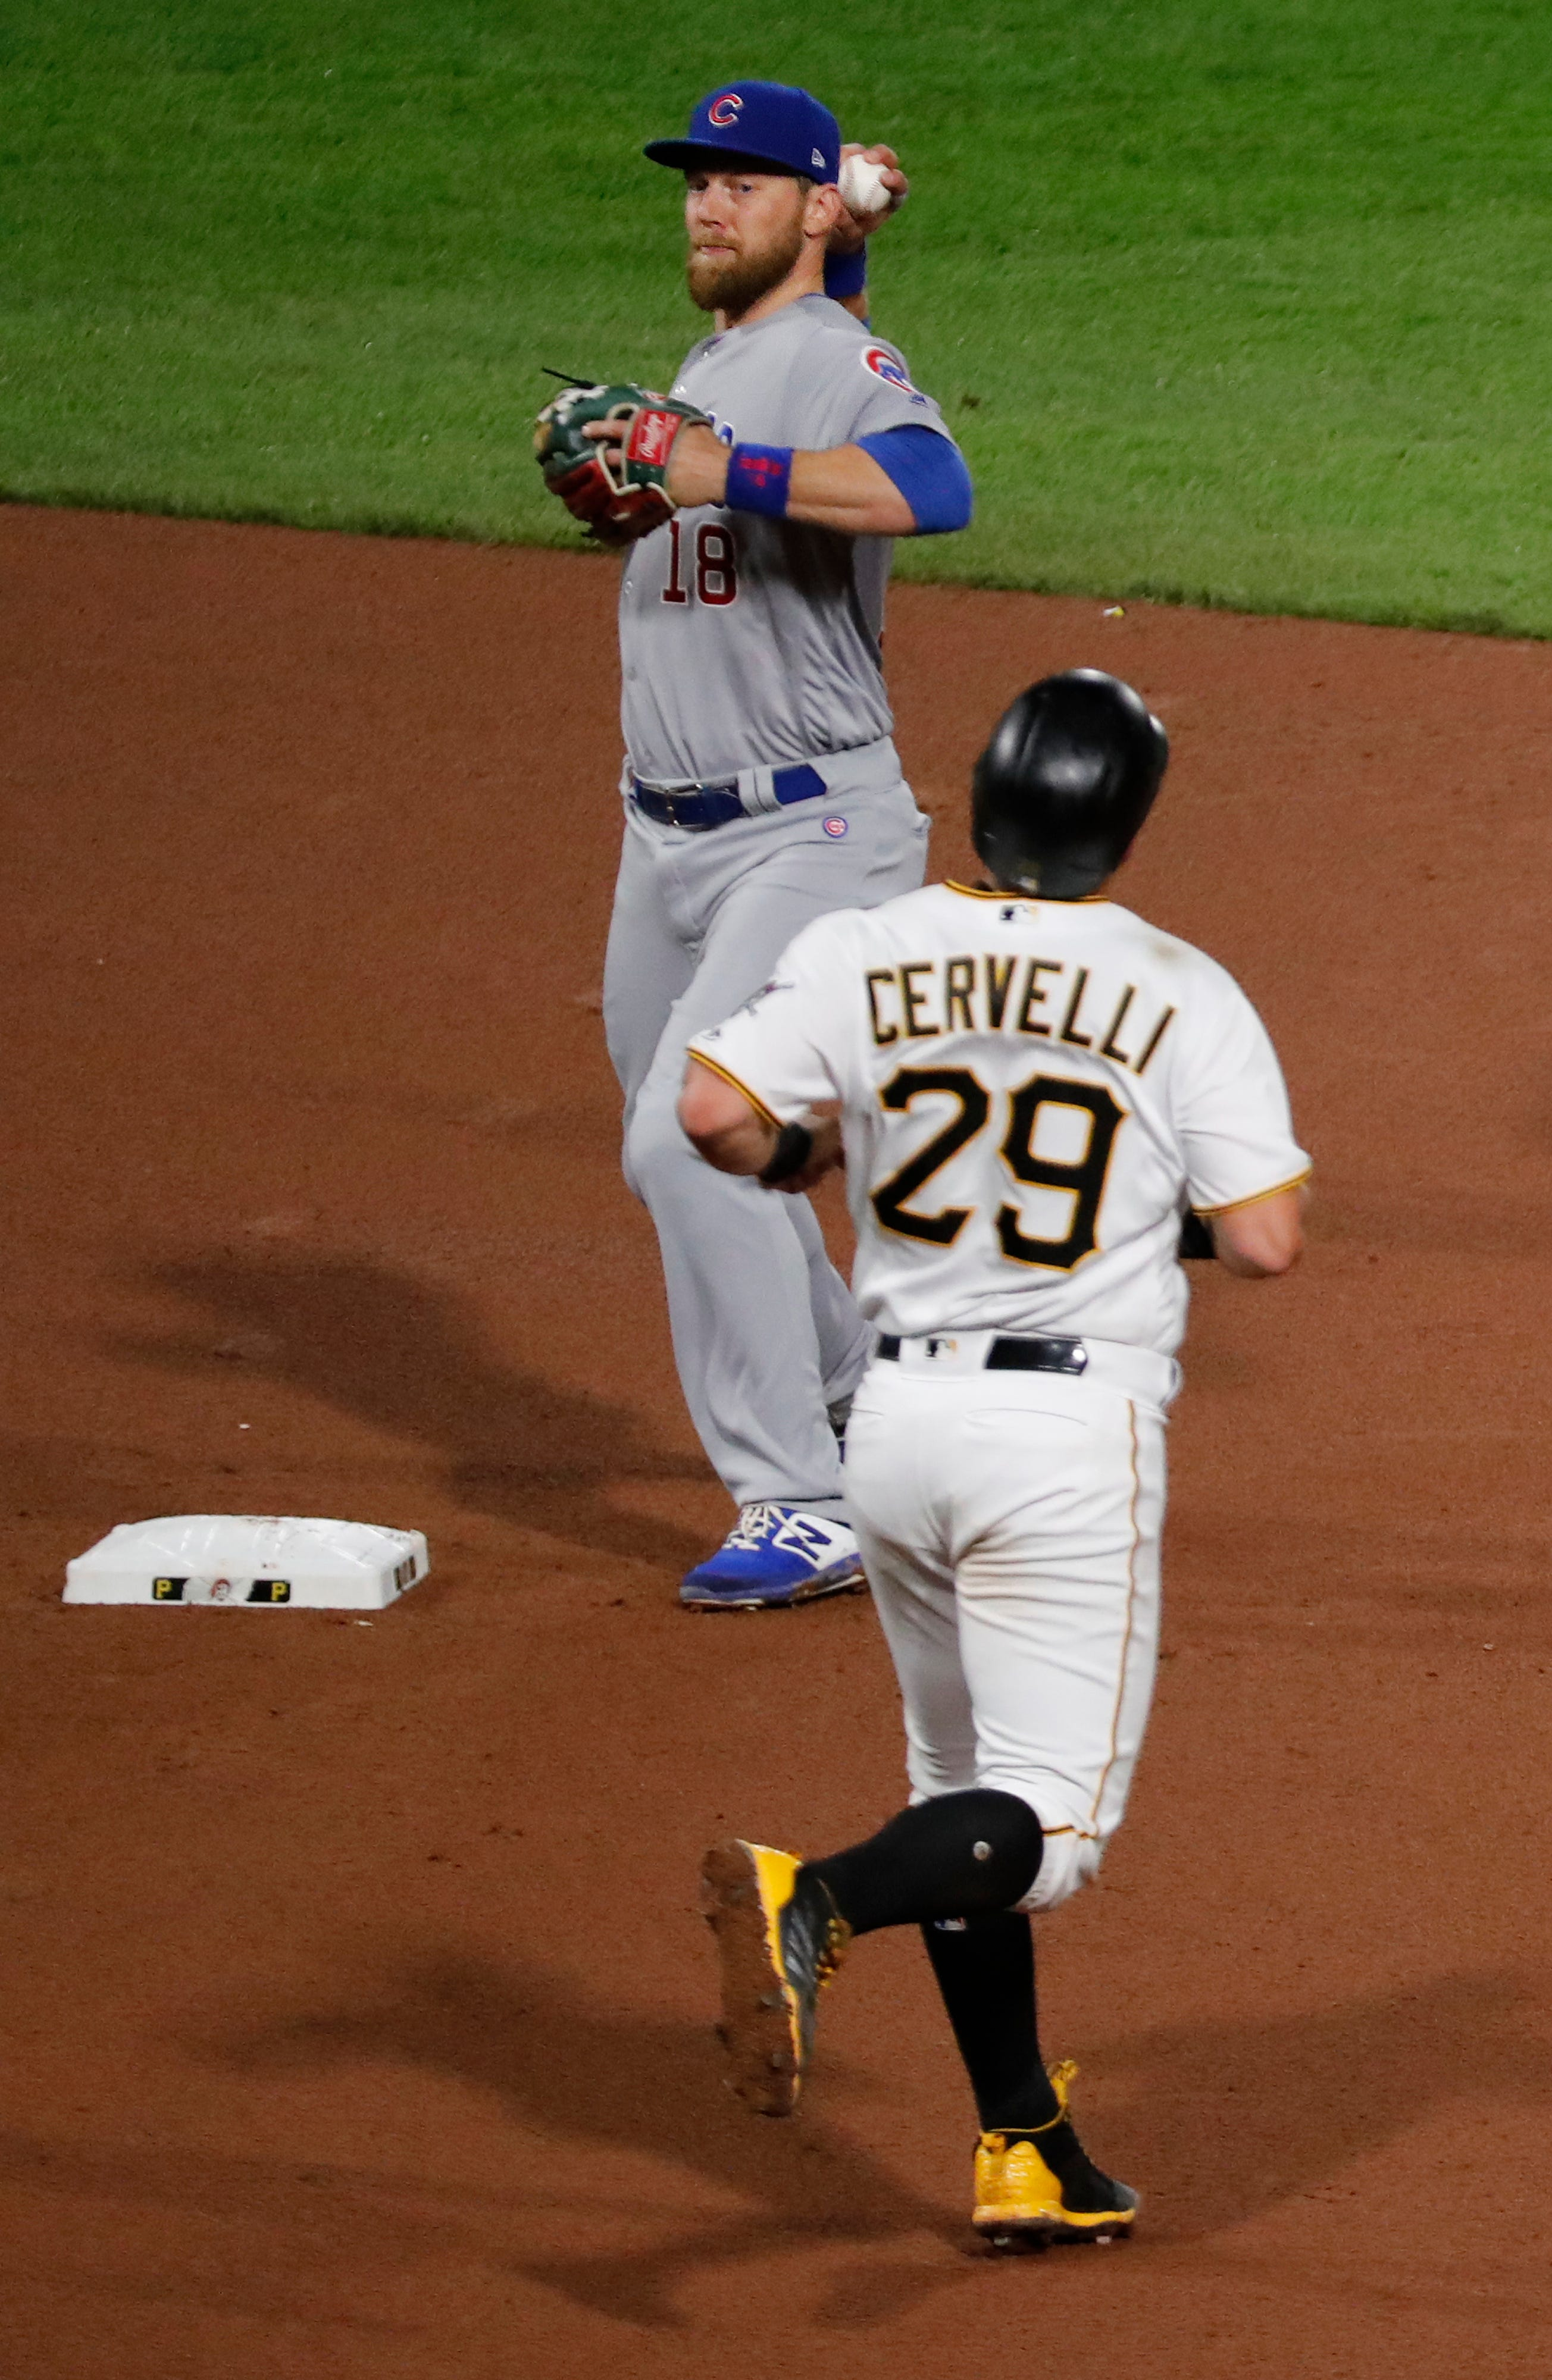 Cubs turn record-tying 7 double plays, beat Pirates 1-0